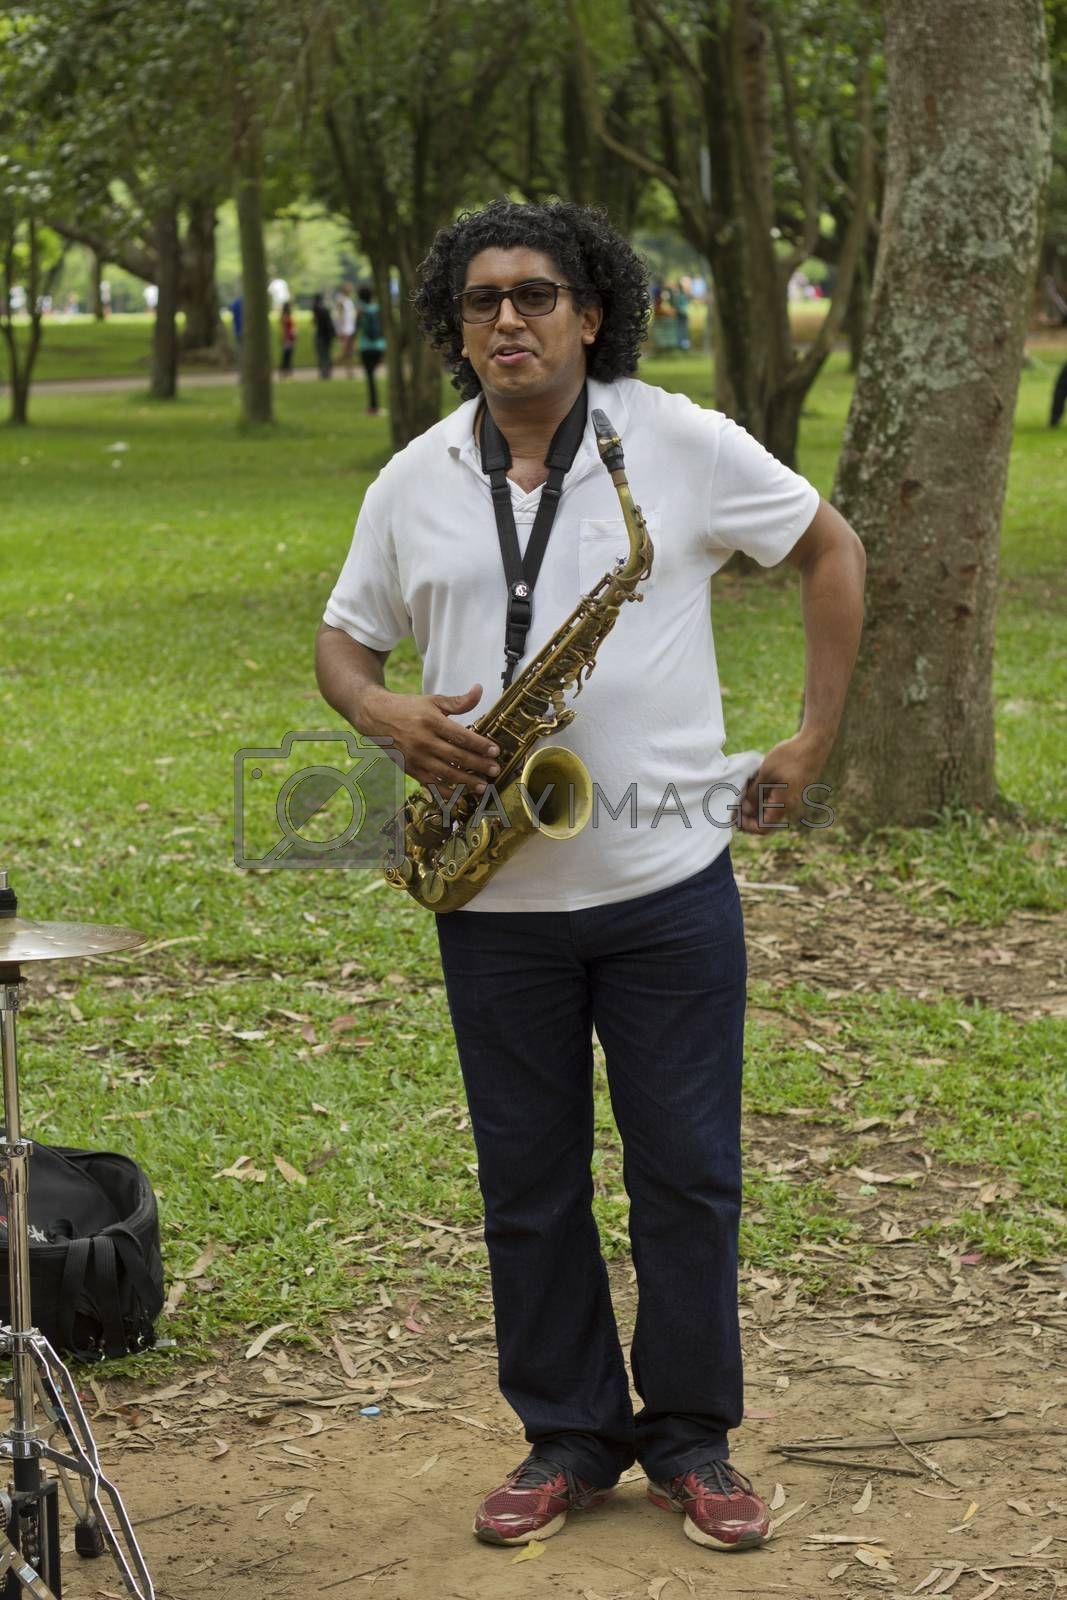 SAO PAULO, BRAZIL - FEBRUARY 01, 2015: An unidentified street musician playing saxophone in the Ibirapuera Park at Sao Paulo Brazil.